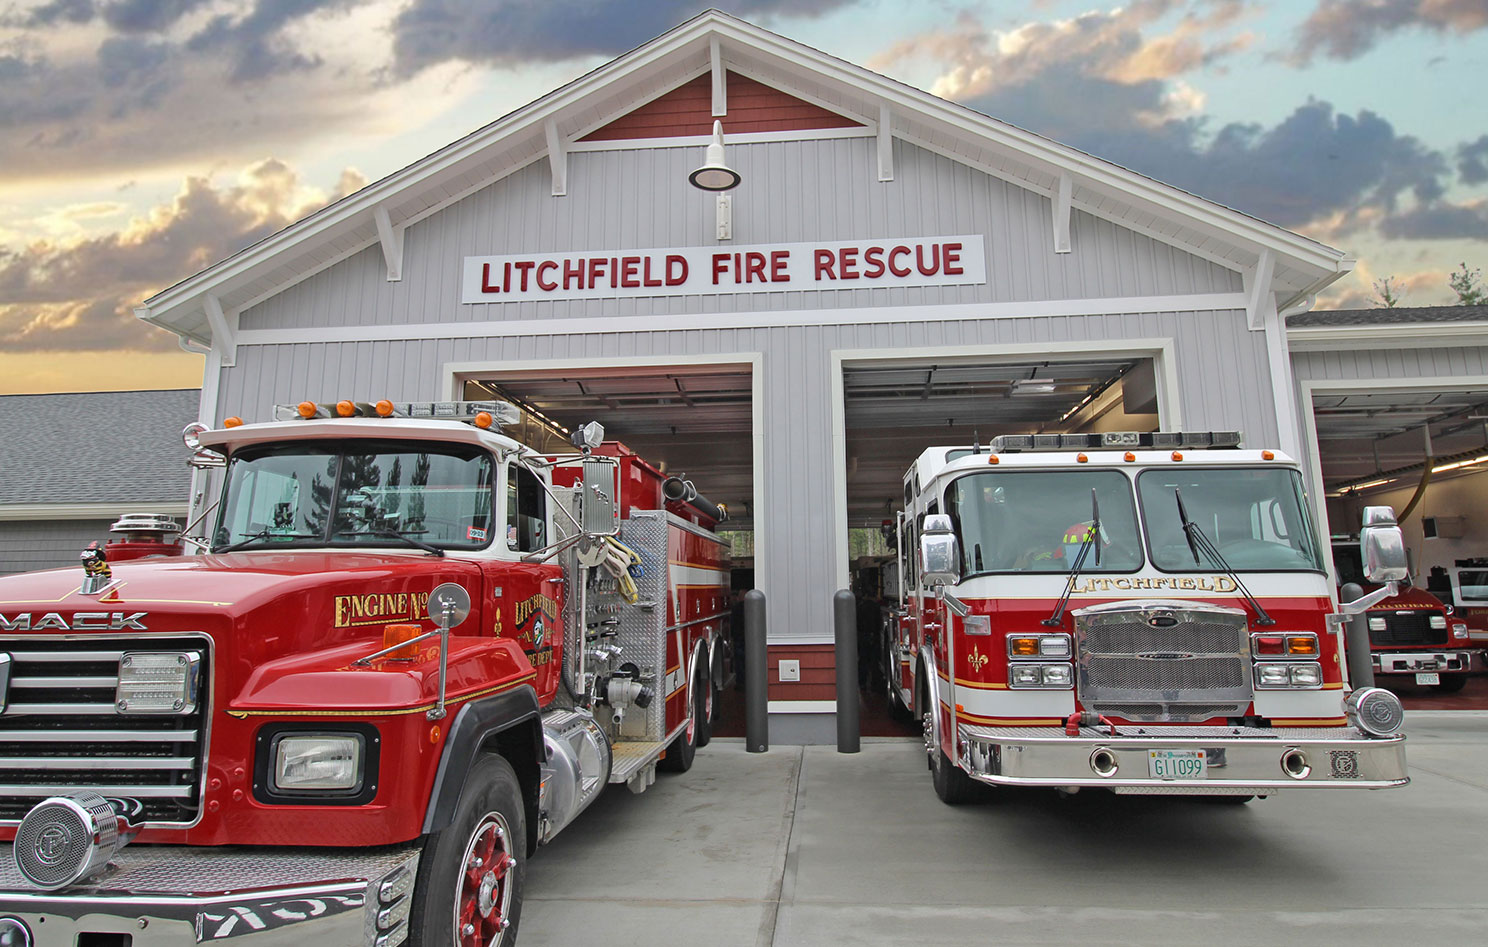 Litchfield Fire Station